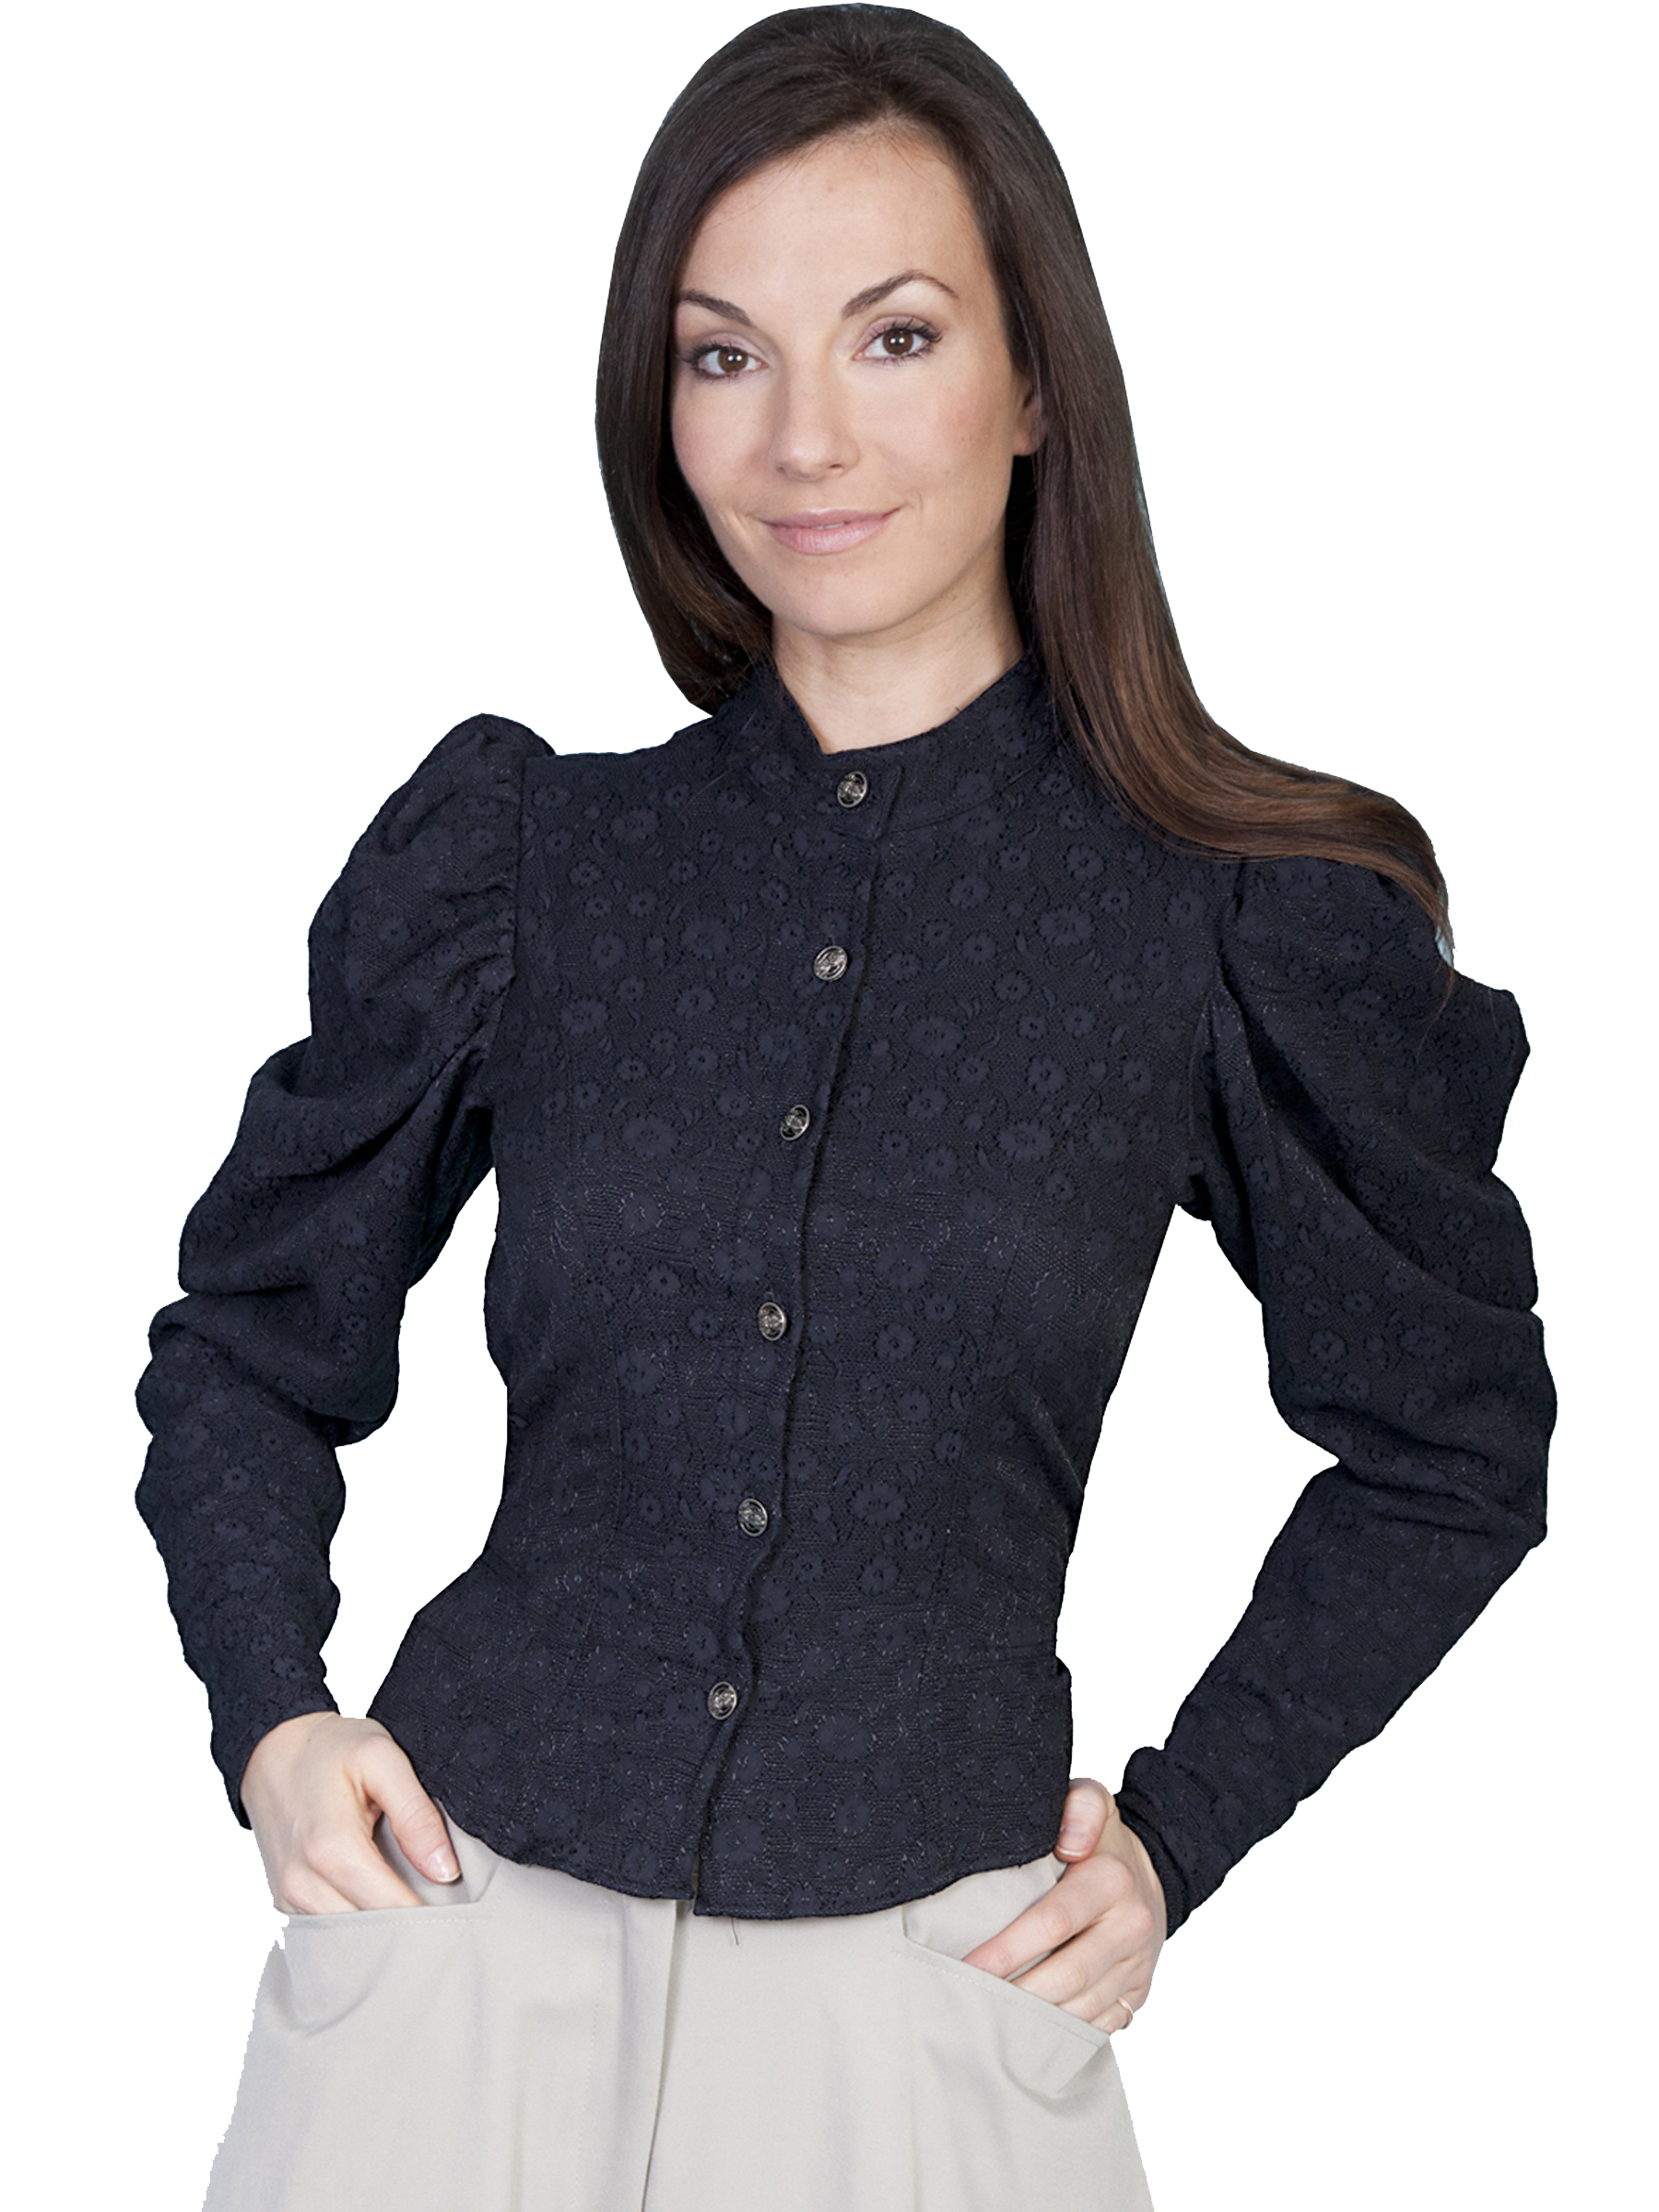 Classic 1880's style blouse